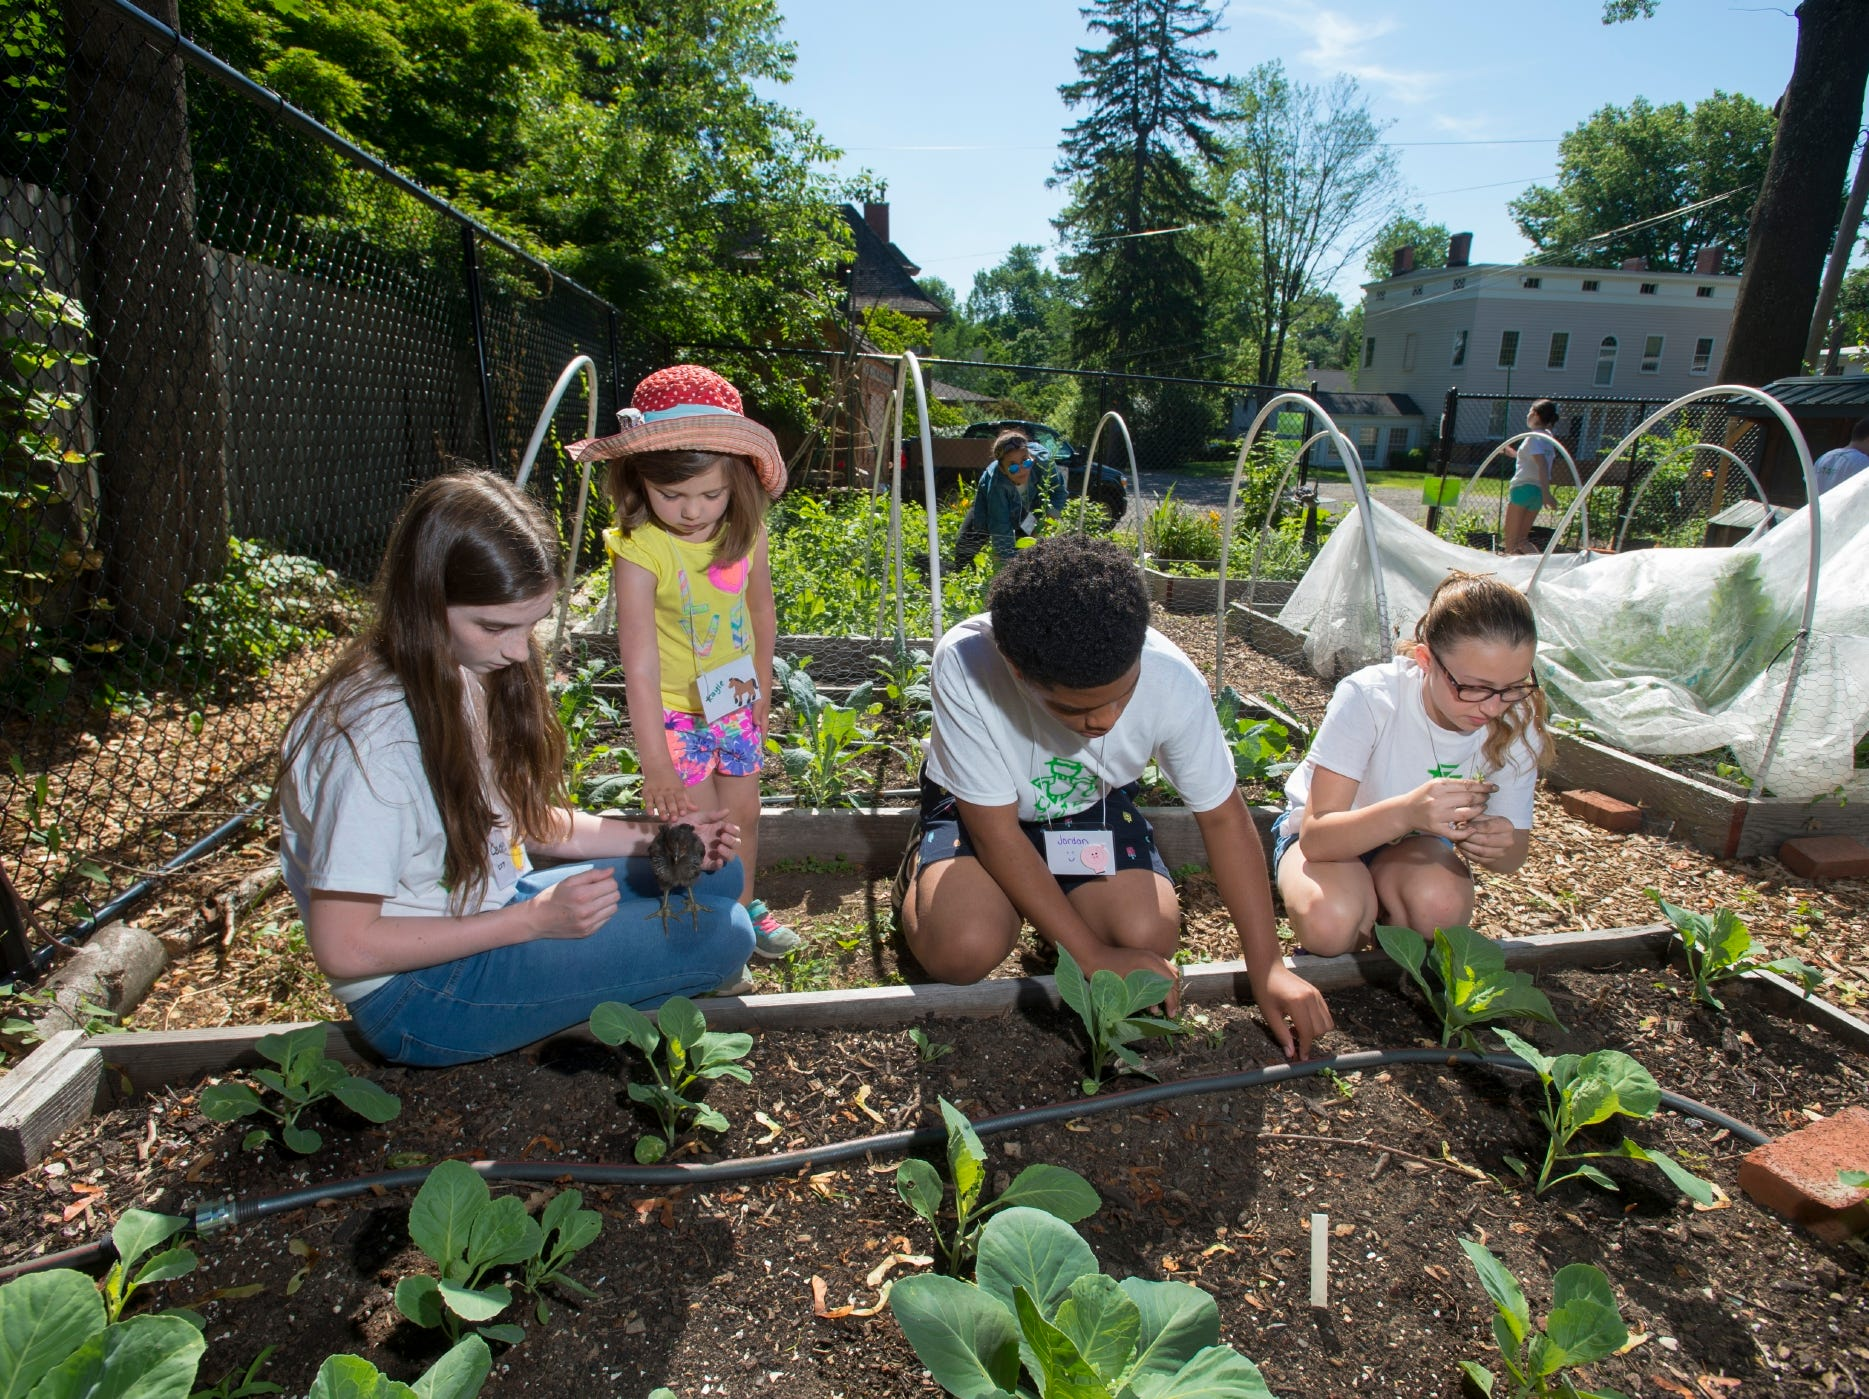 Rutgers extension services help run a 4-H summer camp at the Montclair Community Farm. Participants include from left to right Cecilia Martinez, Kaley Ogara, Jordan Booker and Delaney Picoli.